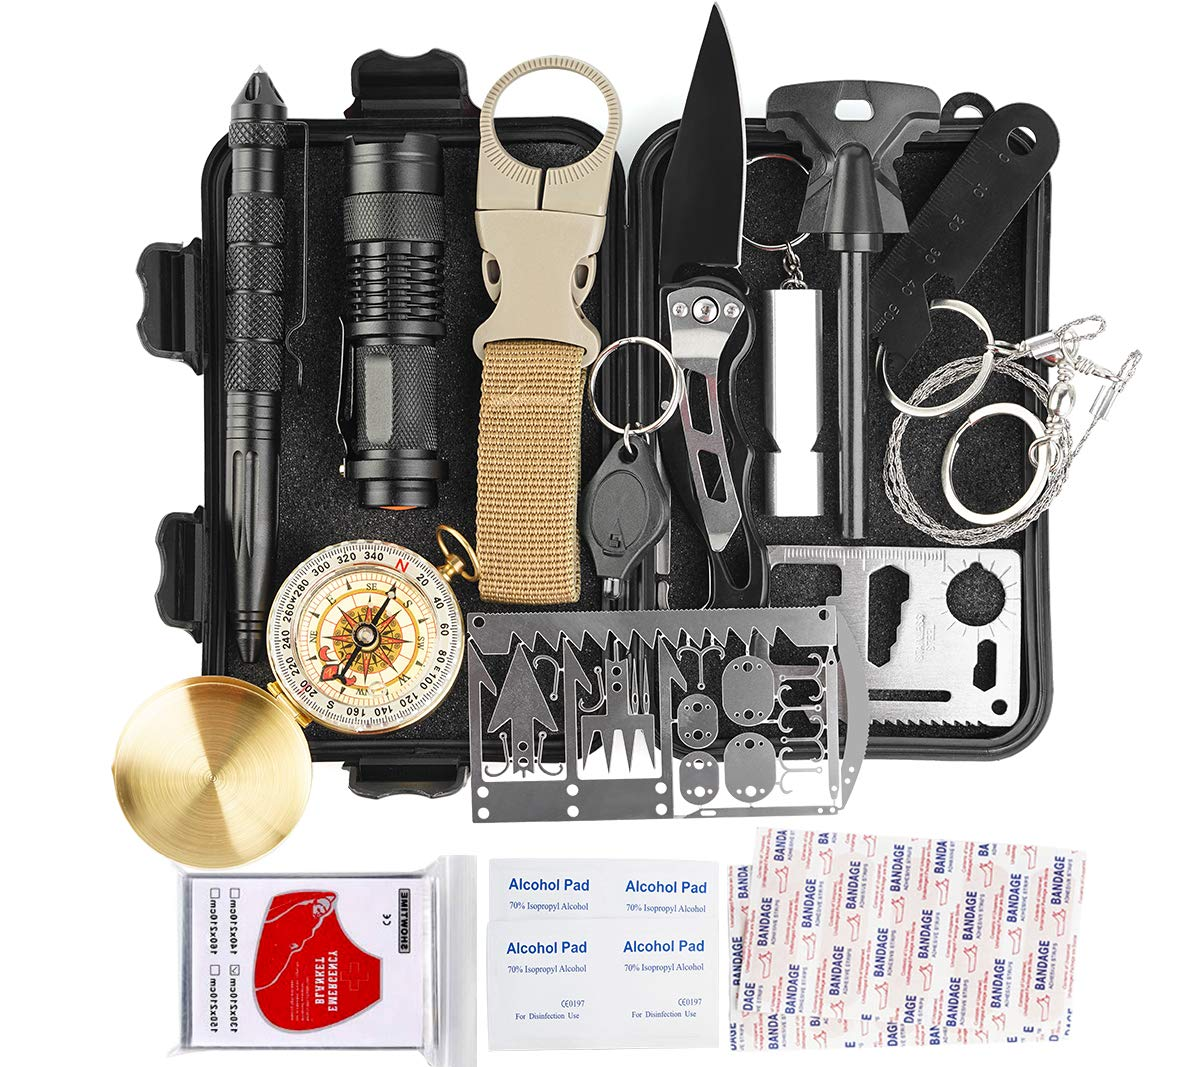 Kitpipi Survival Gear Kit 27 Pieces Outdoor Survival Tool Emergency Camping Gear With Compass Flintstones Saber Card Styptic For Adventure Outdoors Sport Best Gift For Men Boys Buy Online In Pakistan At